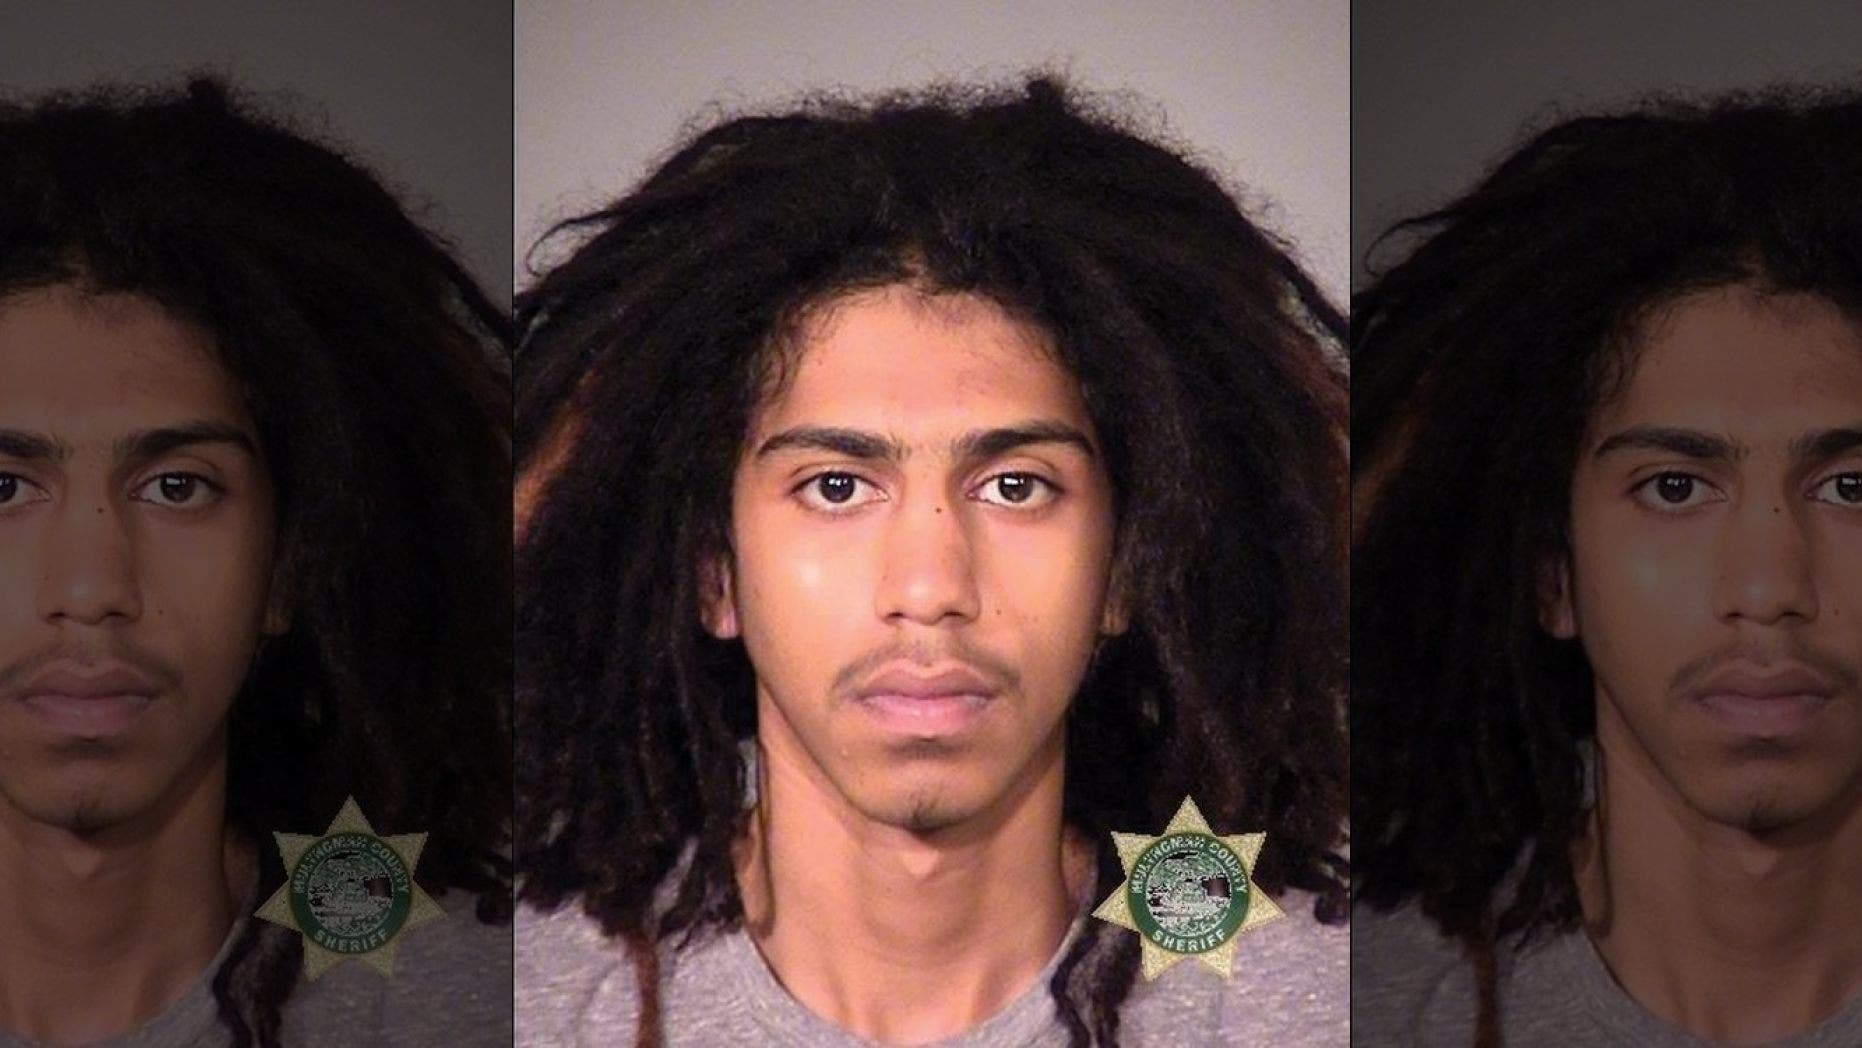 Abdulrahman Sameer Noorah was indicted for first-degree manslaughter, among other charges, after a fatal hit-and-run of a 15-year-old Oregon girl.